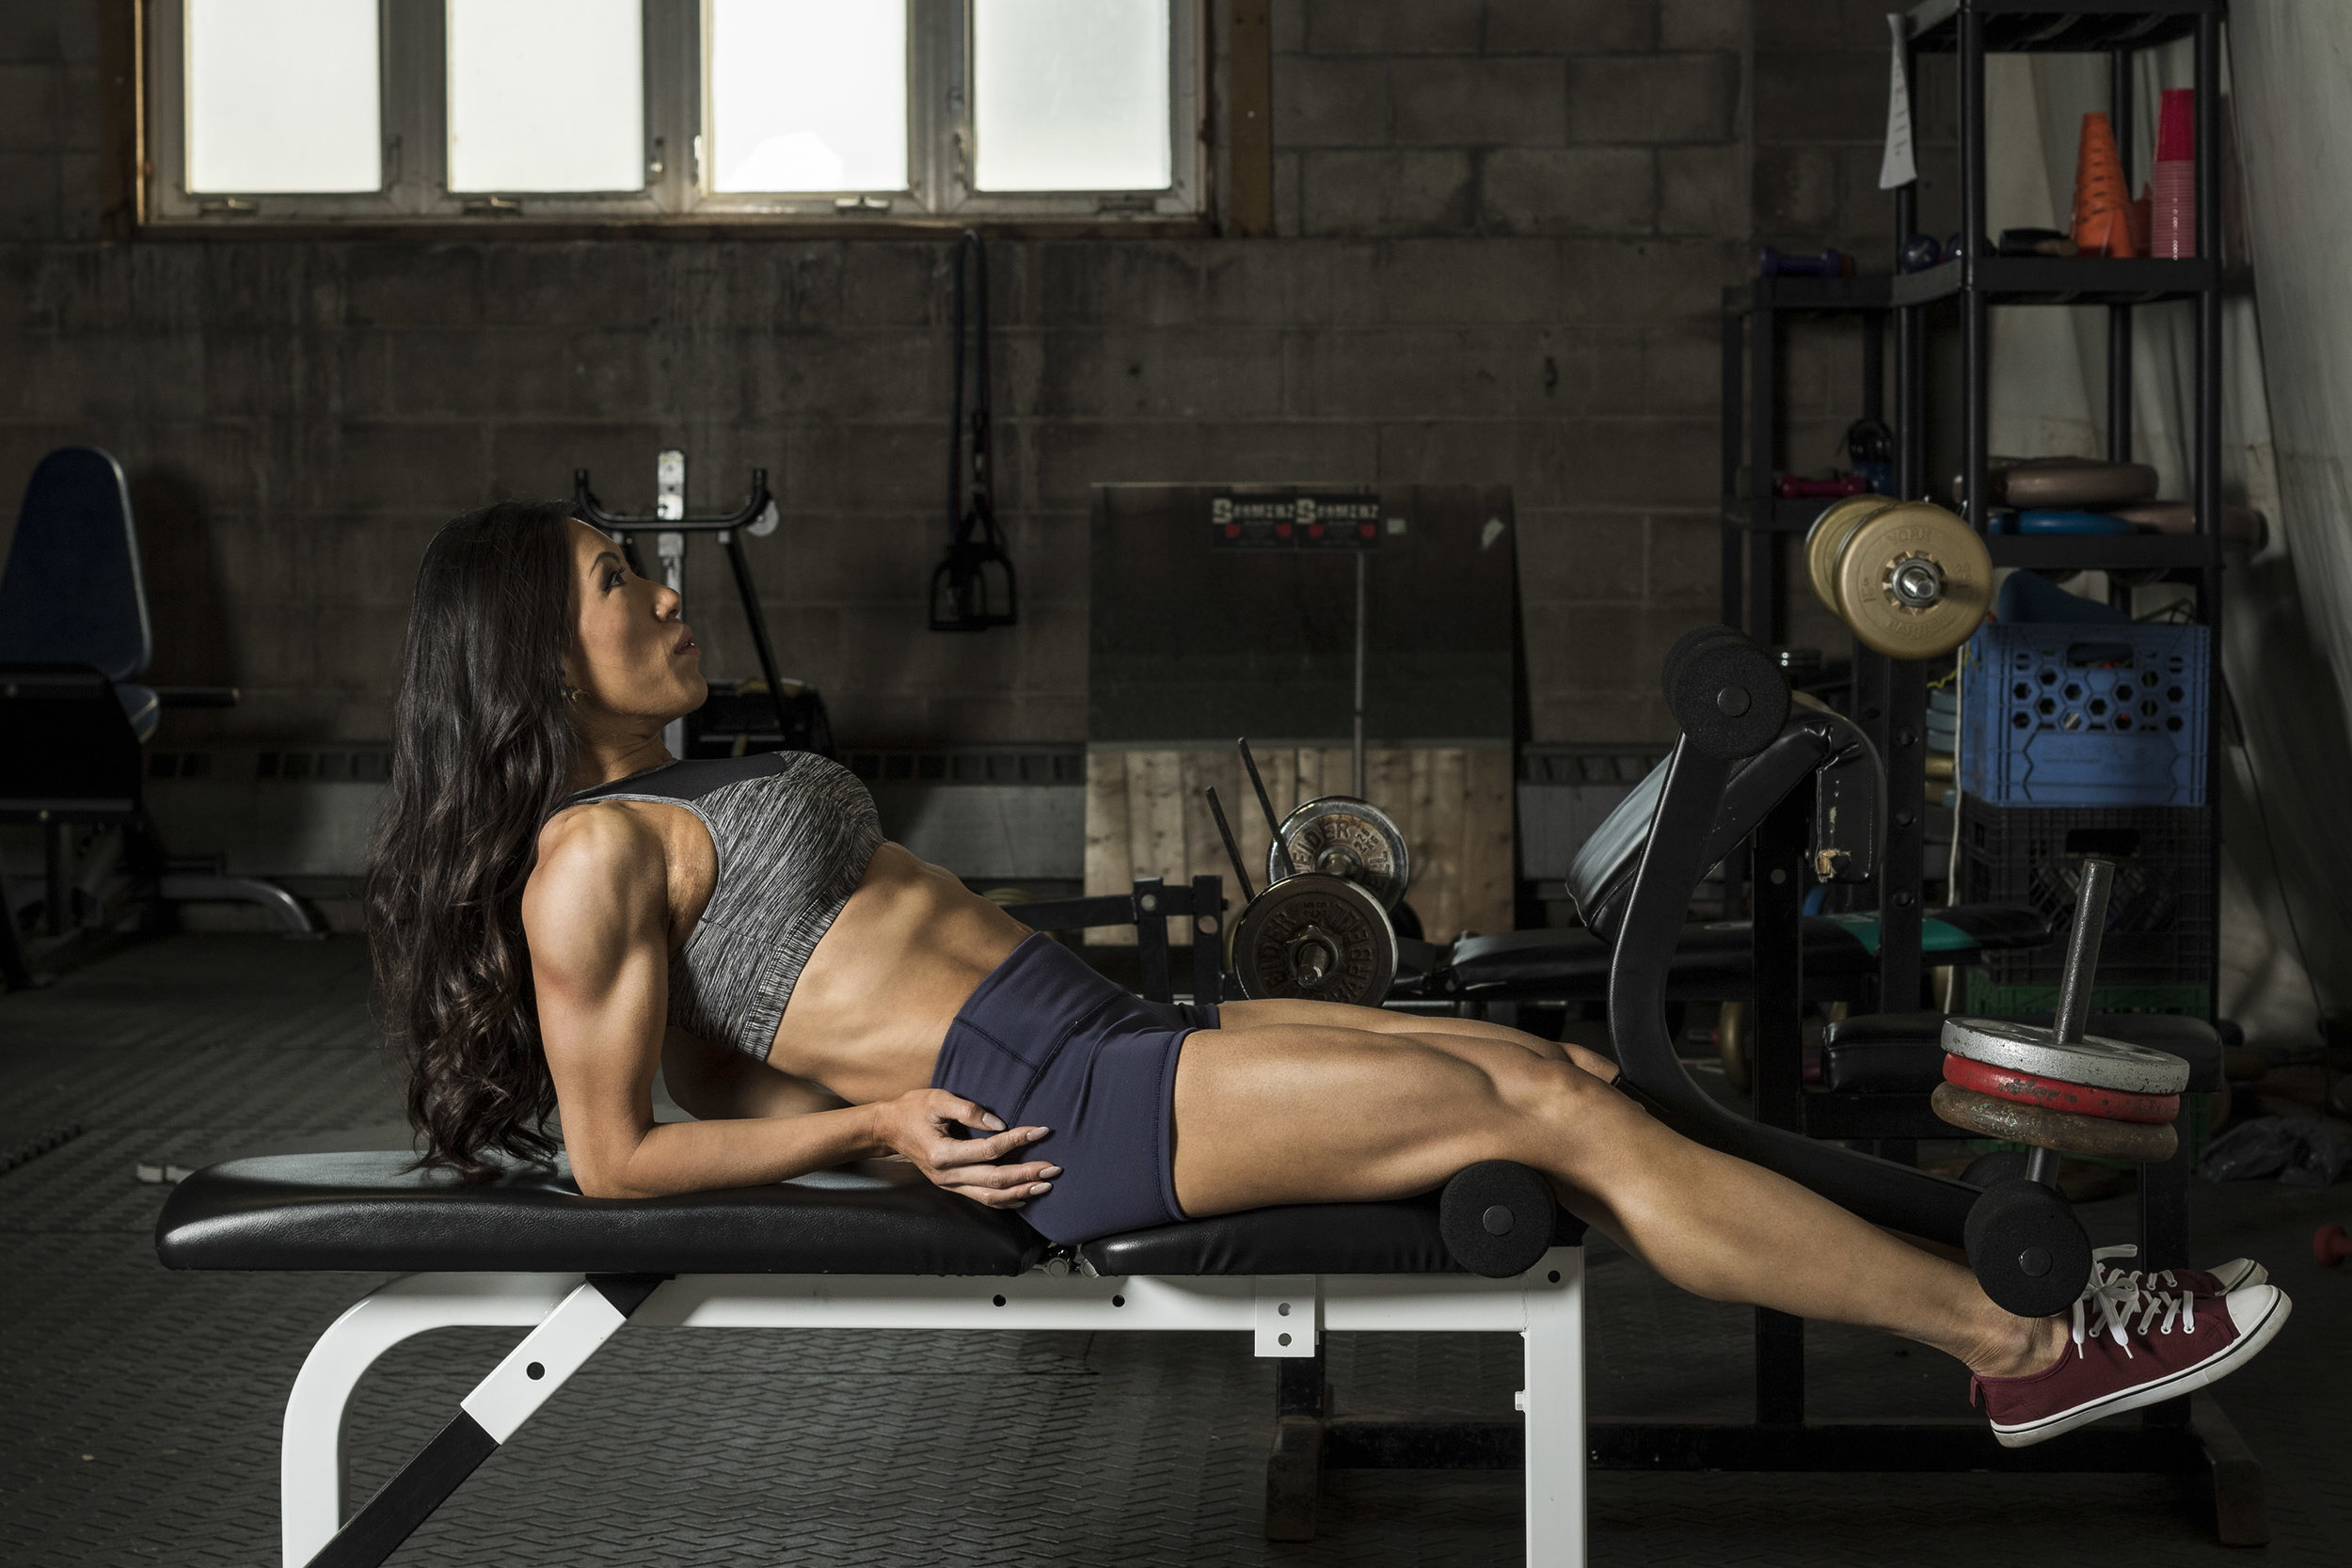 Leg extensions for quads, but don't miss her delts.